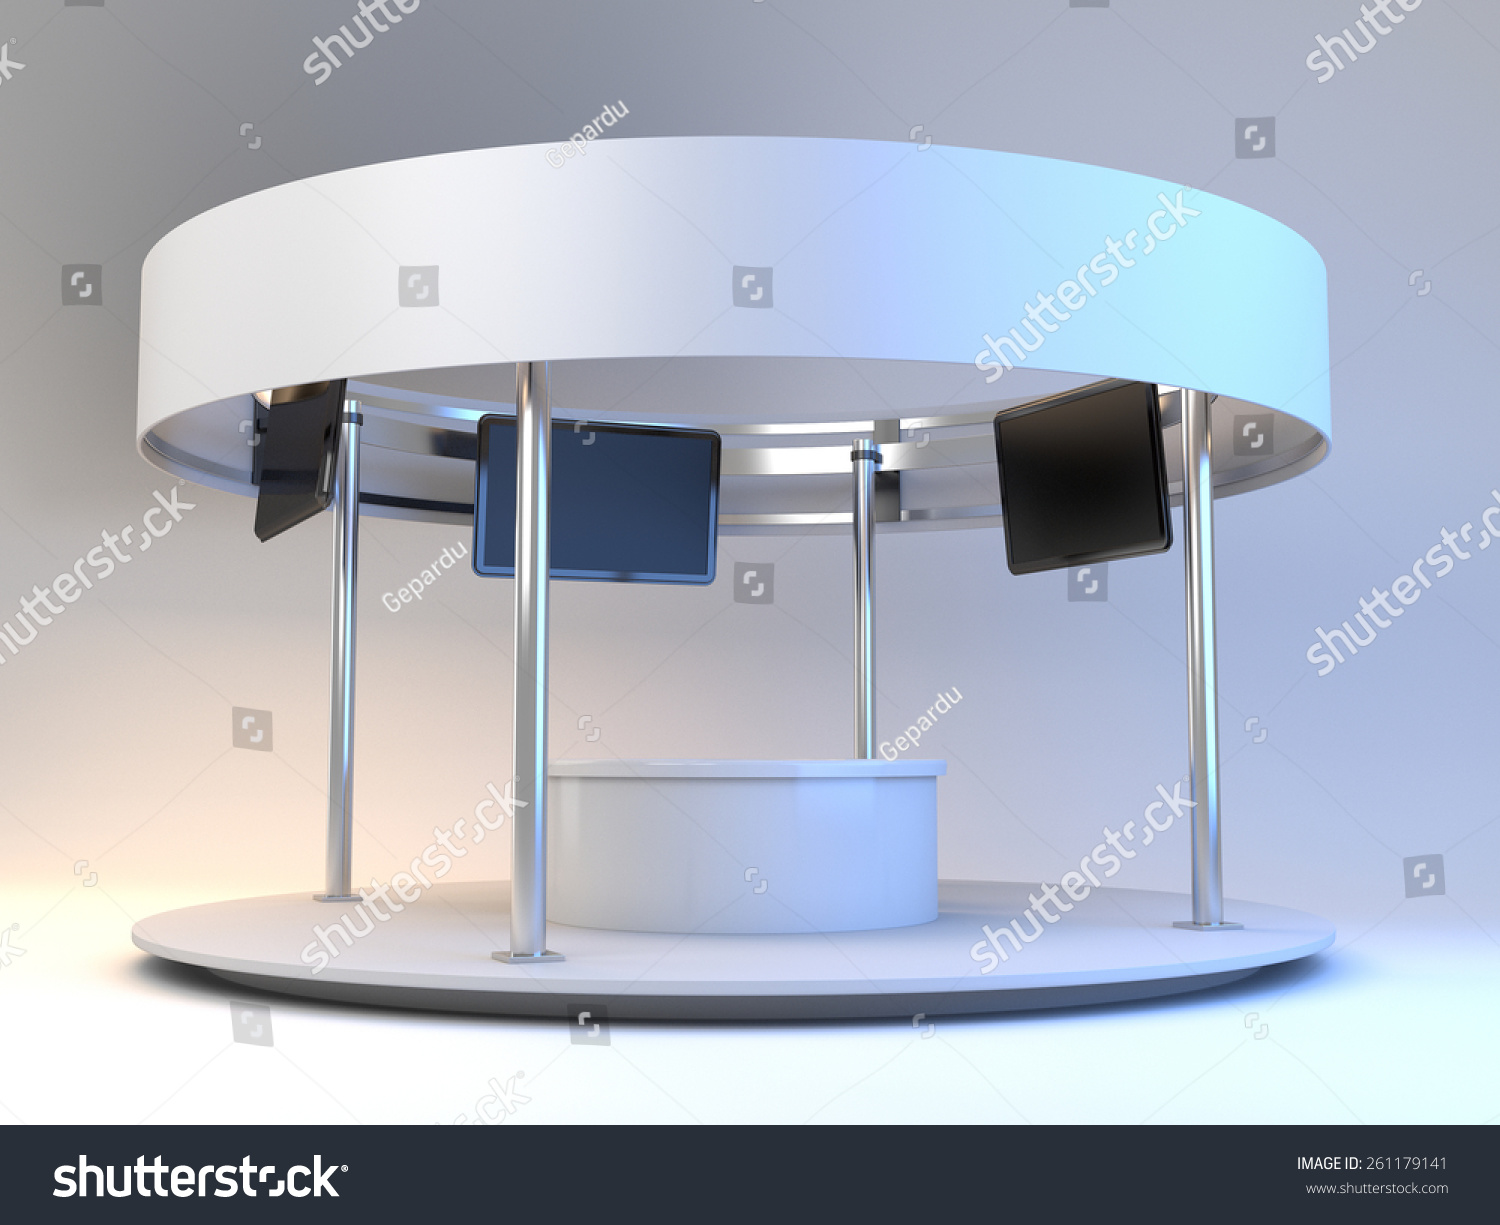 Exhibition Stall Vector : Blank stall with rondo in an exhibition tv displays